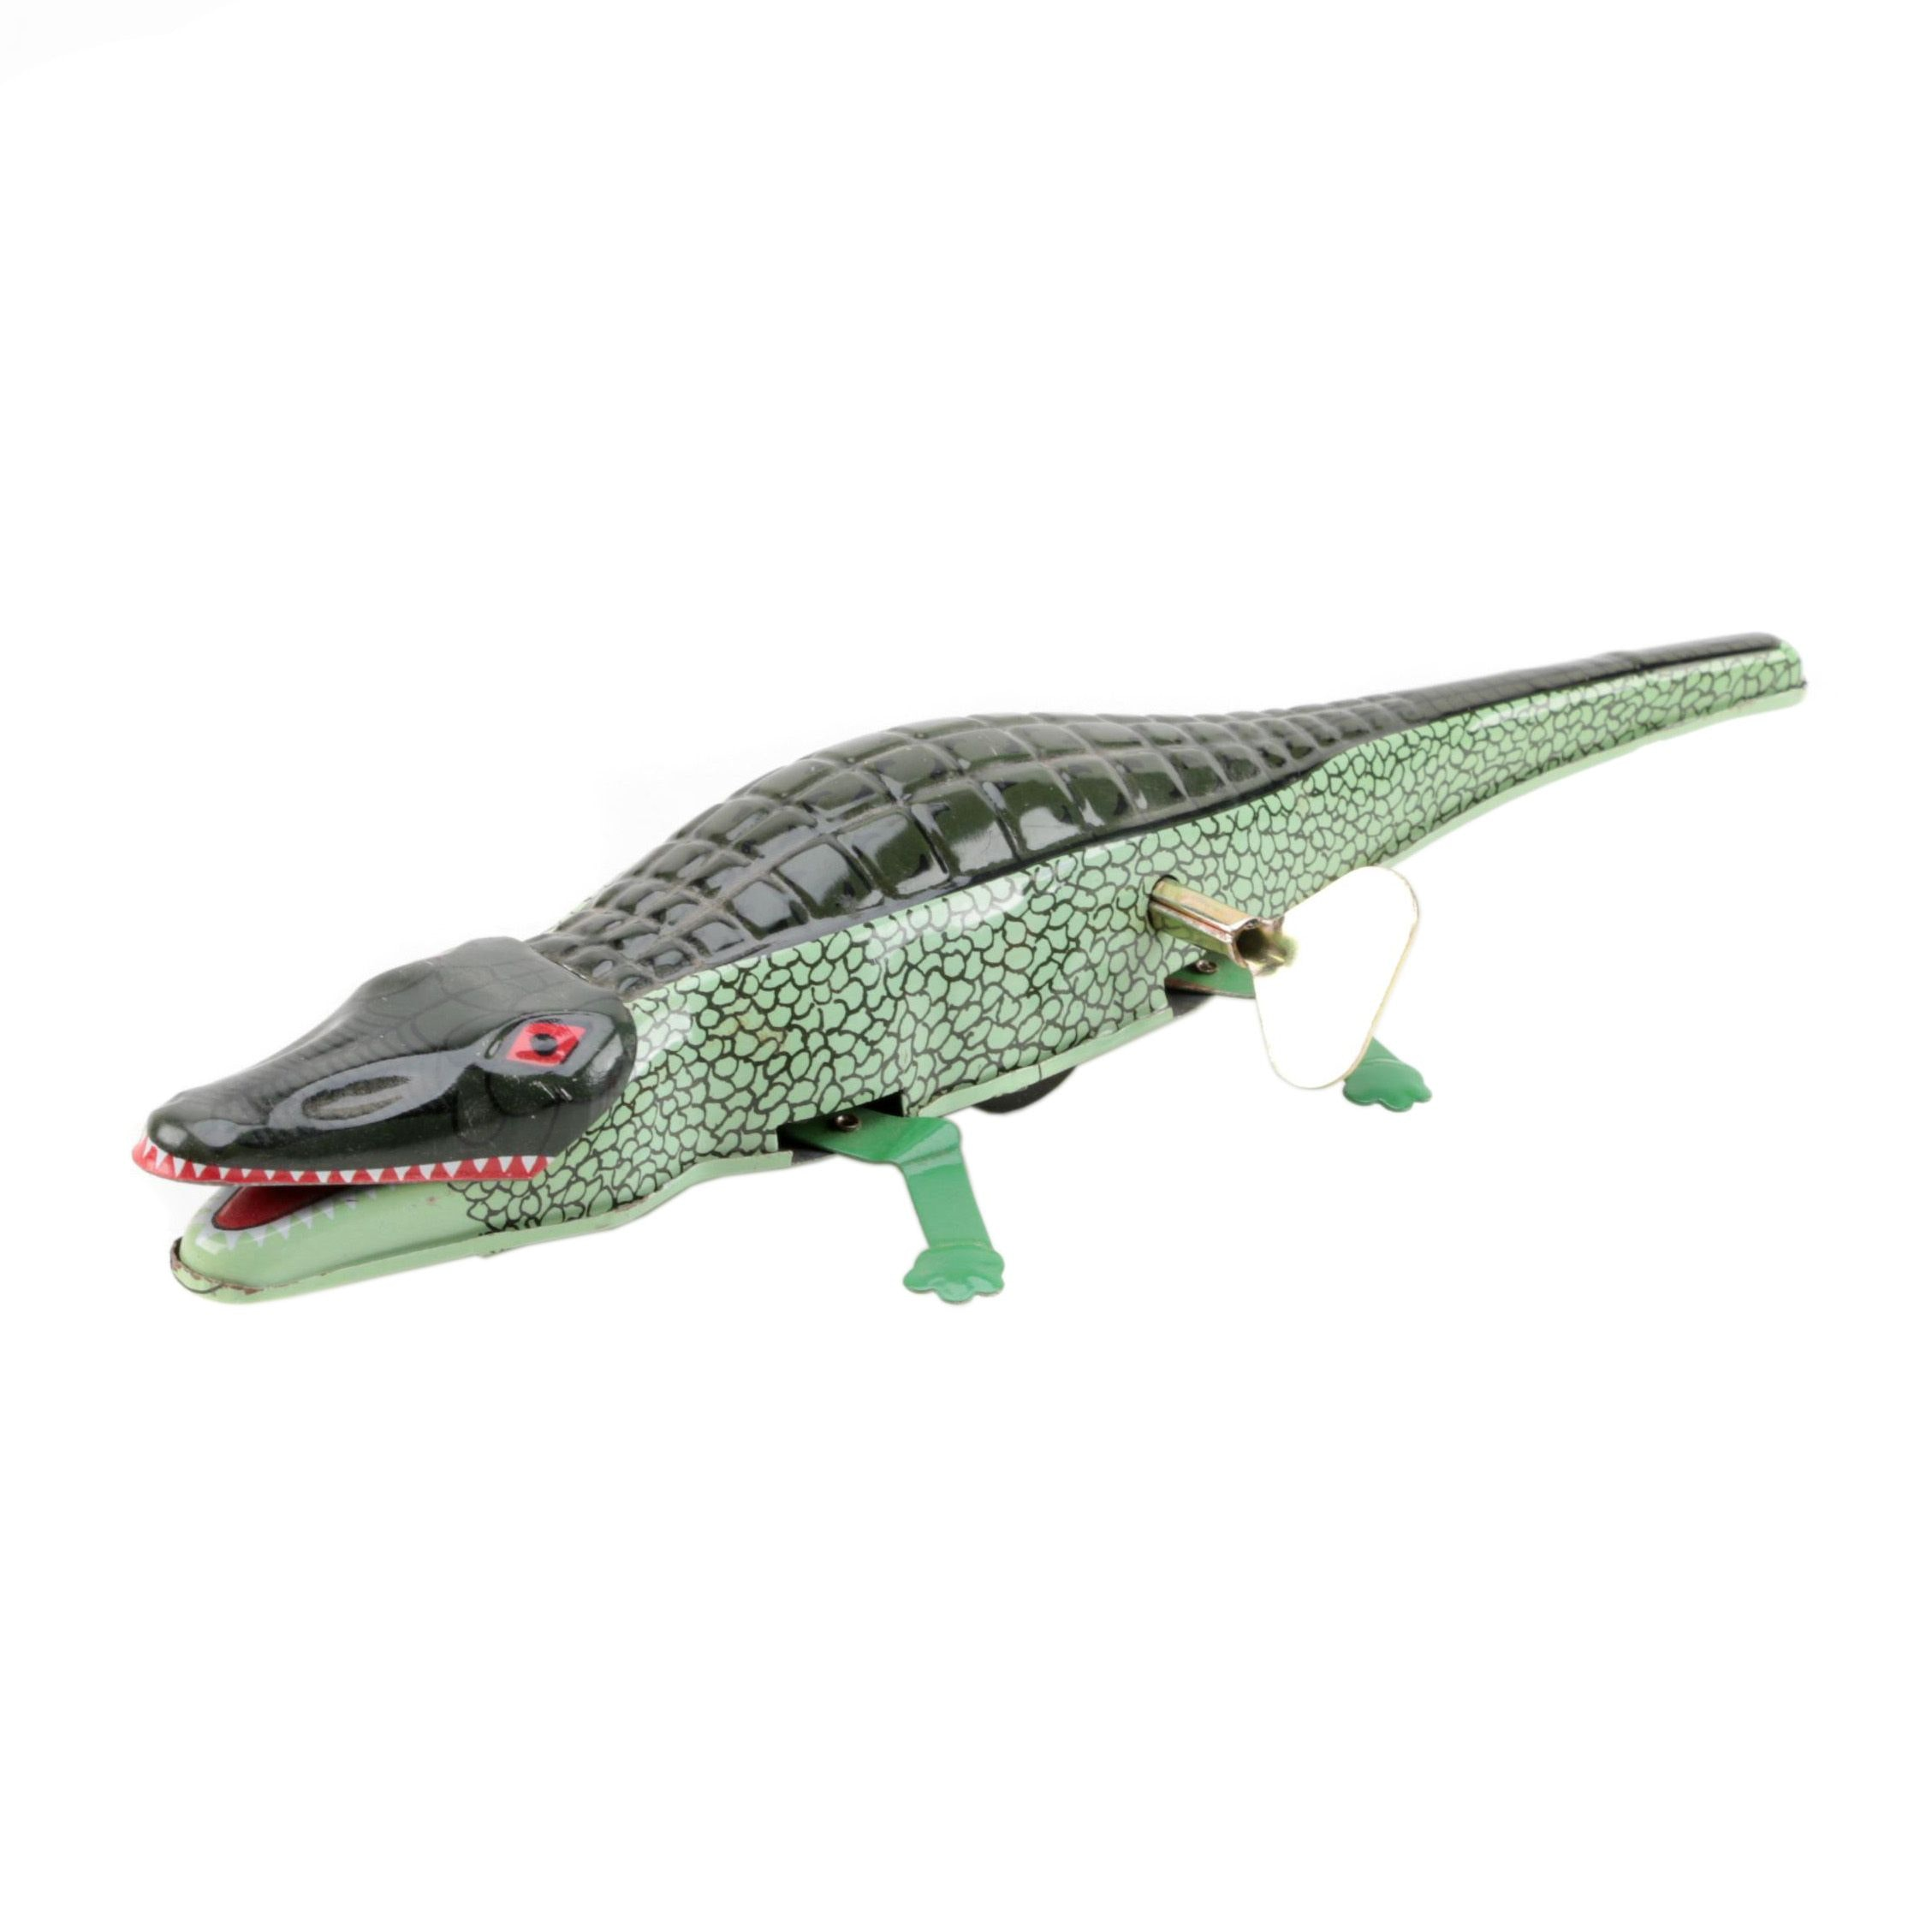 Tin Litho Wind-Up Inertia Crocodile